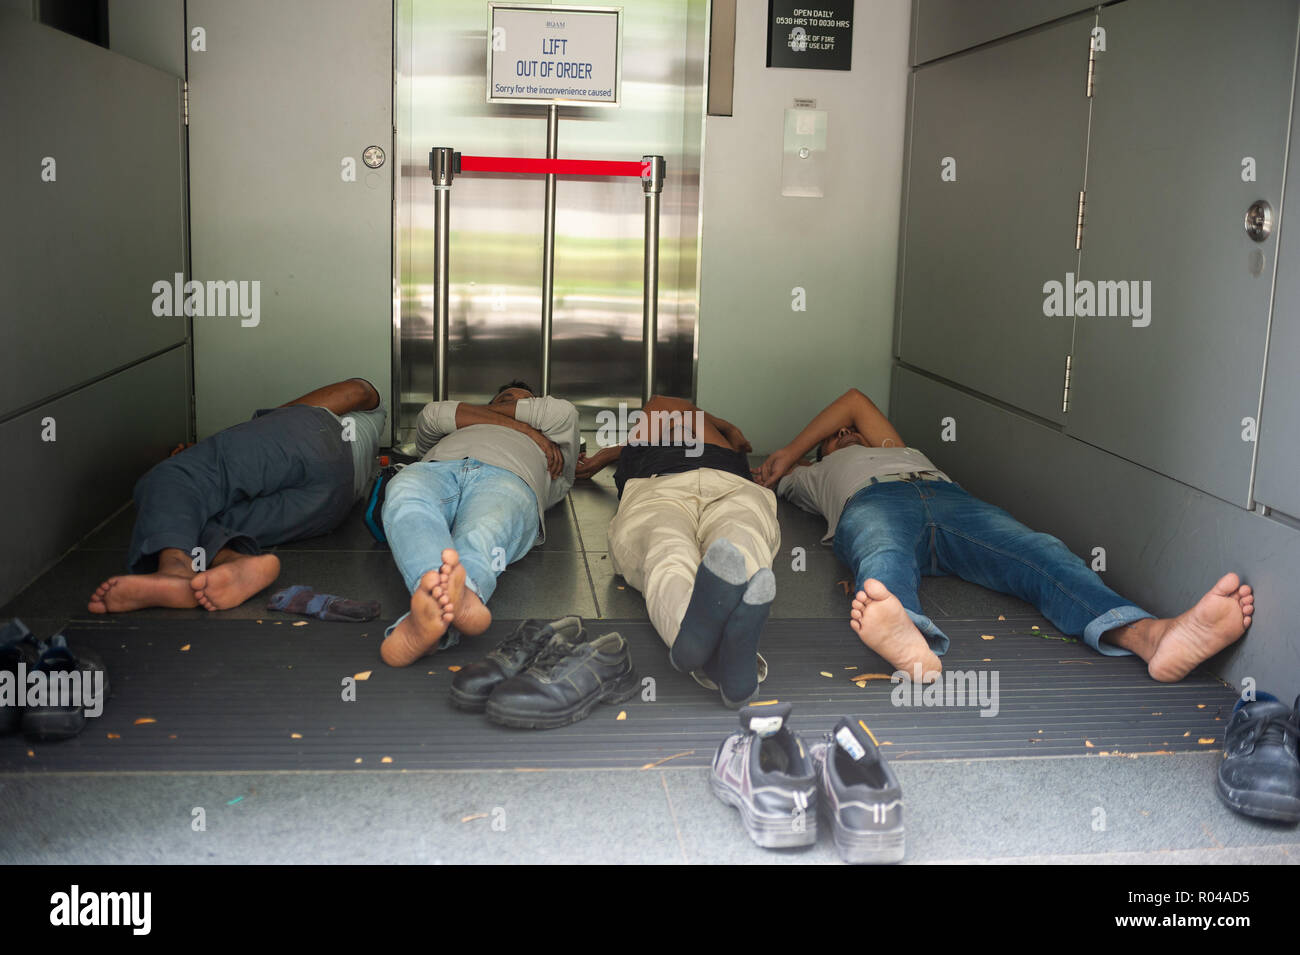 Republic of Singapore, Siesta in Downtown - Stock Image